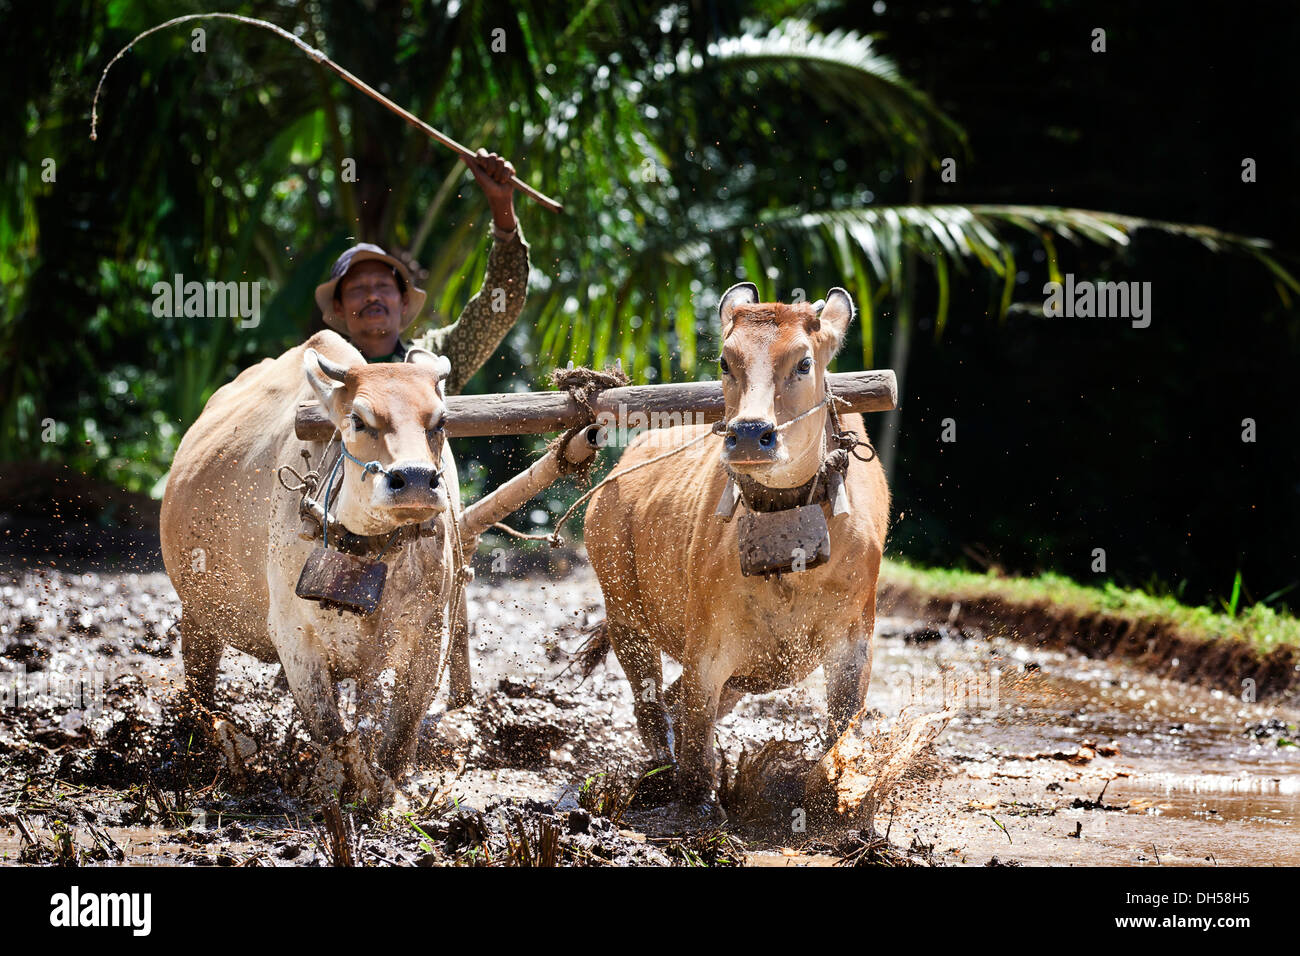 Indonesian farmer plowing a rice field with oxen, Terara, Lombok island, Nusa Tenggara Barat Province, Indonesia - Stock Image